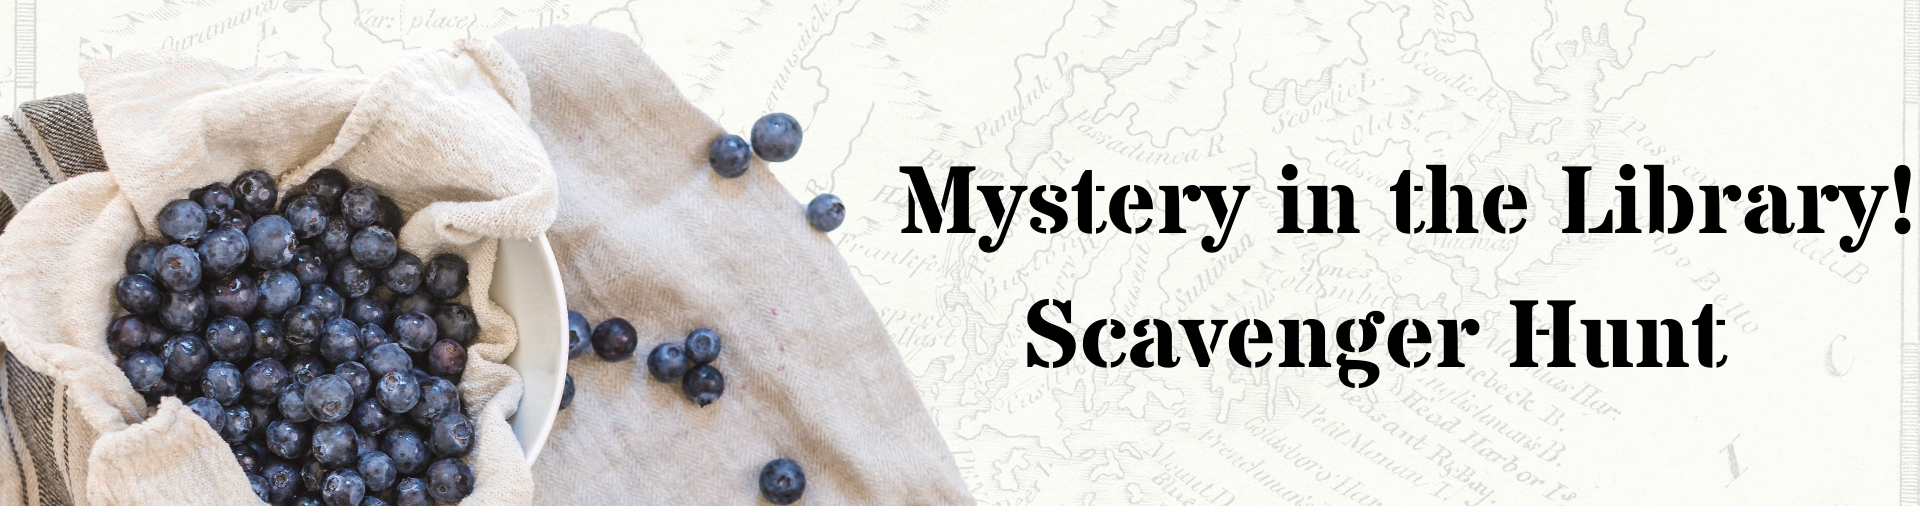 """Banner with a picture of blueberries in a burlap lined bowl with the text """"Mystery in the Library! Scavenger Hunt"""""""